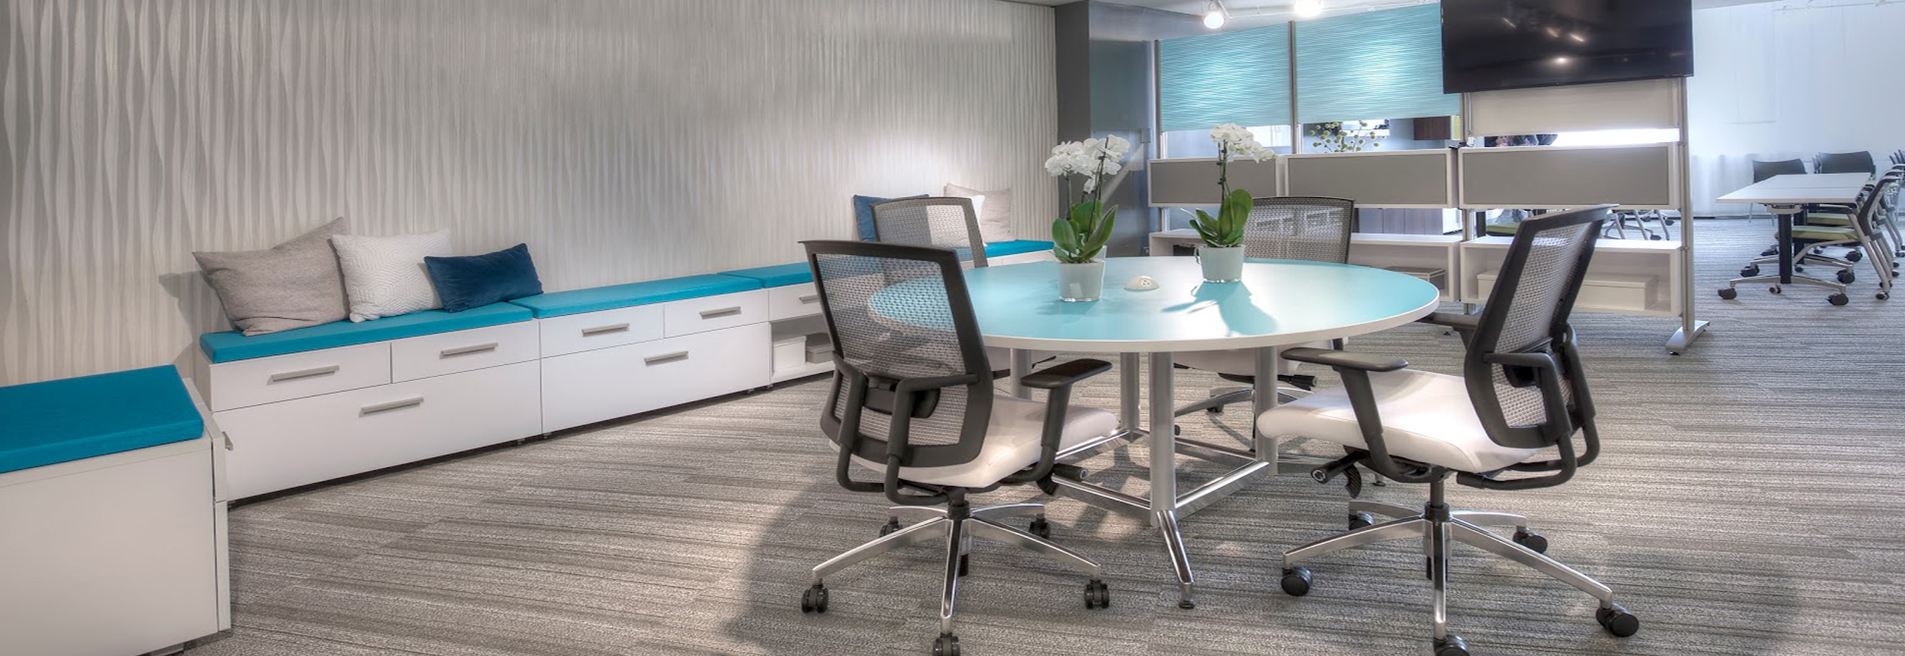 Meeting Room Tables Conference Room Furniture By Cubicles